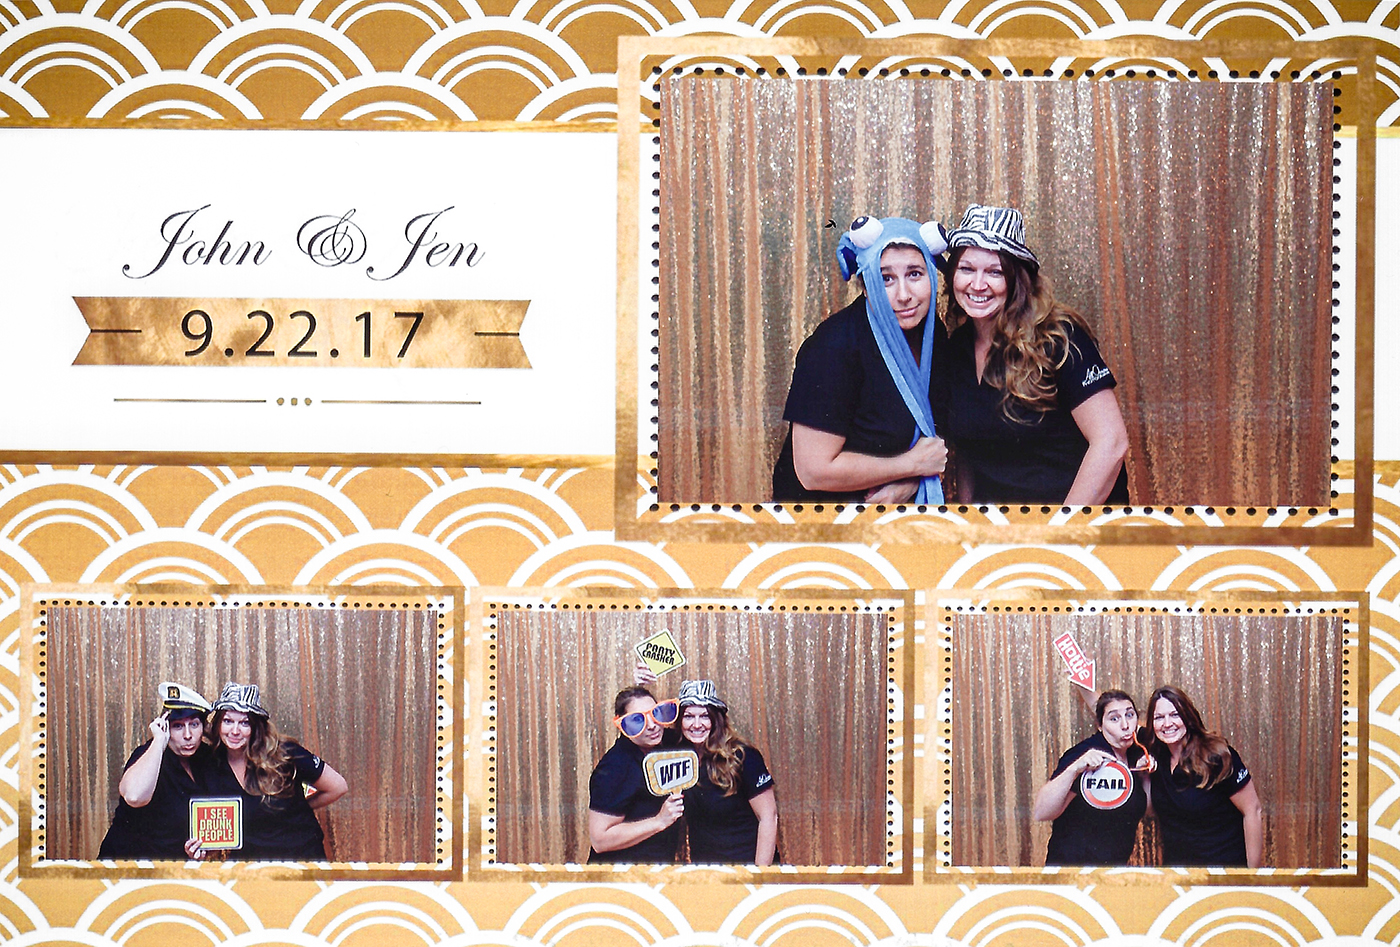 All Occasions Photography Albany NY - Wedding Photography Funny Photographers Wearing Silly Hats